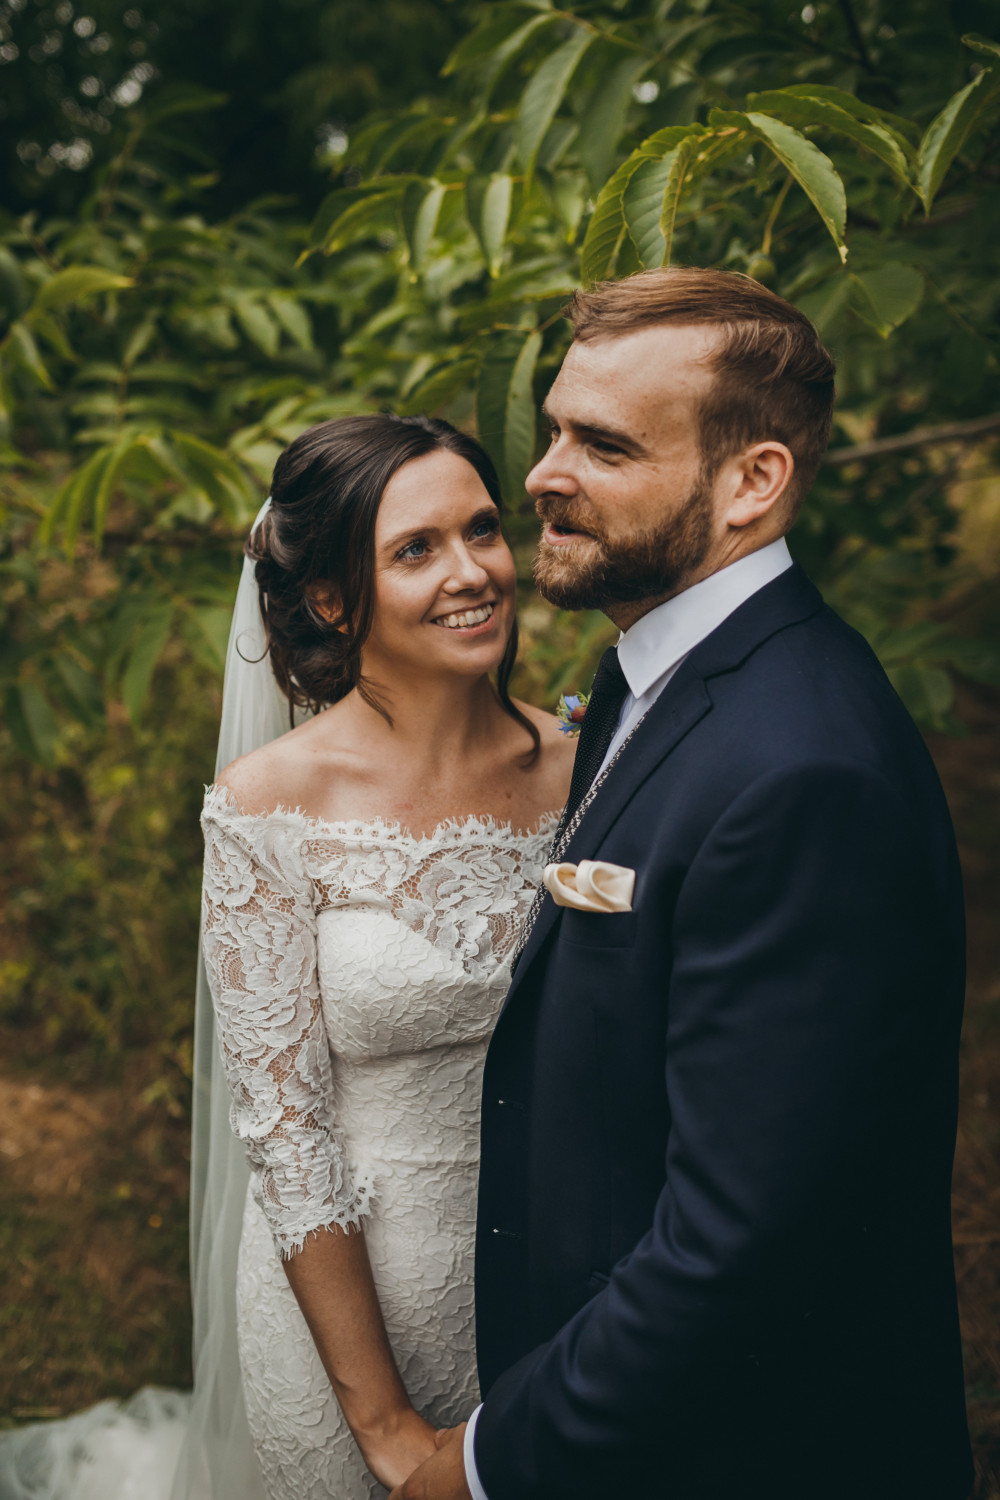 Beautiful bride and groom at Kingsettle Stud, with an intricate Bohemian-style bridal hairstyle. - Make Me Bridal Artist: Bridal Hair in Hampshire. Photography by: Mark Tattersall. #bohemian #classic #countryside